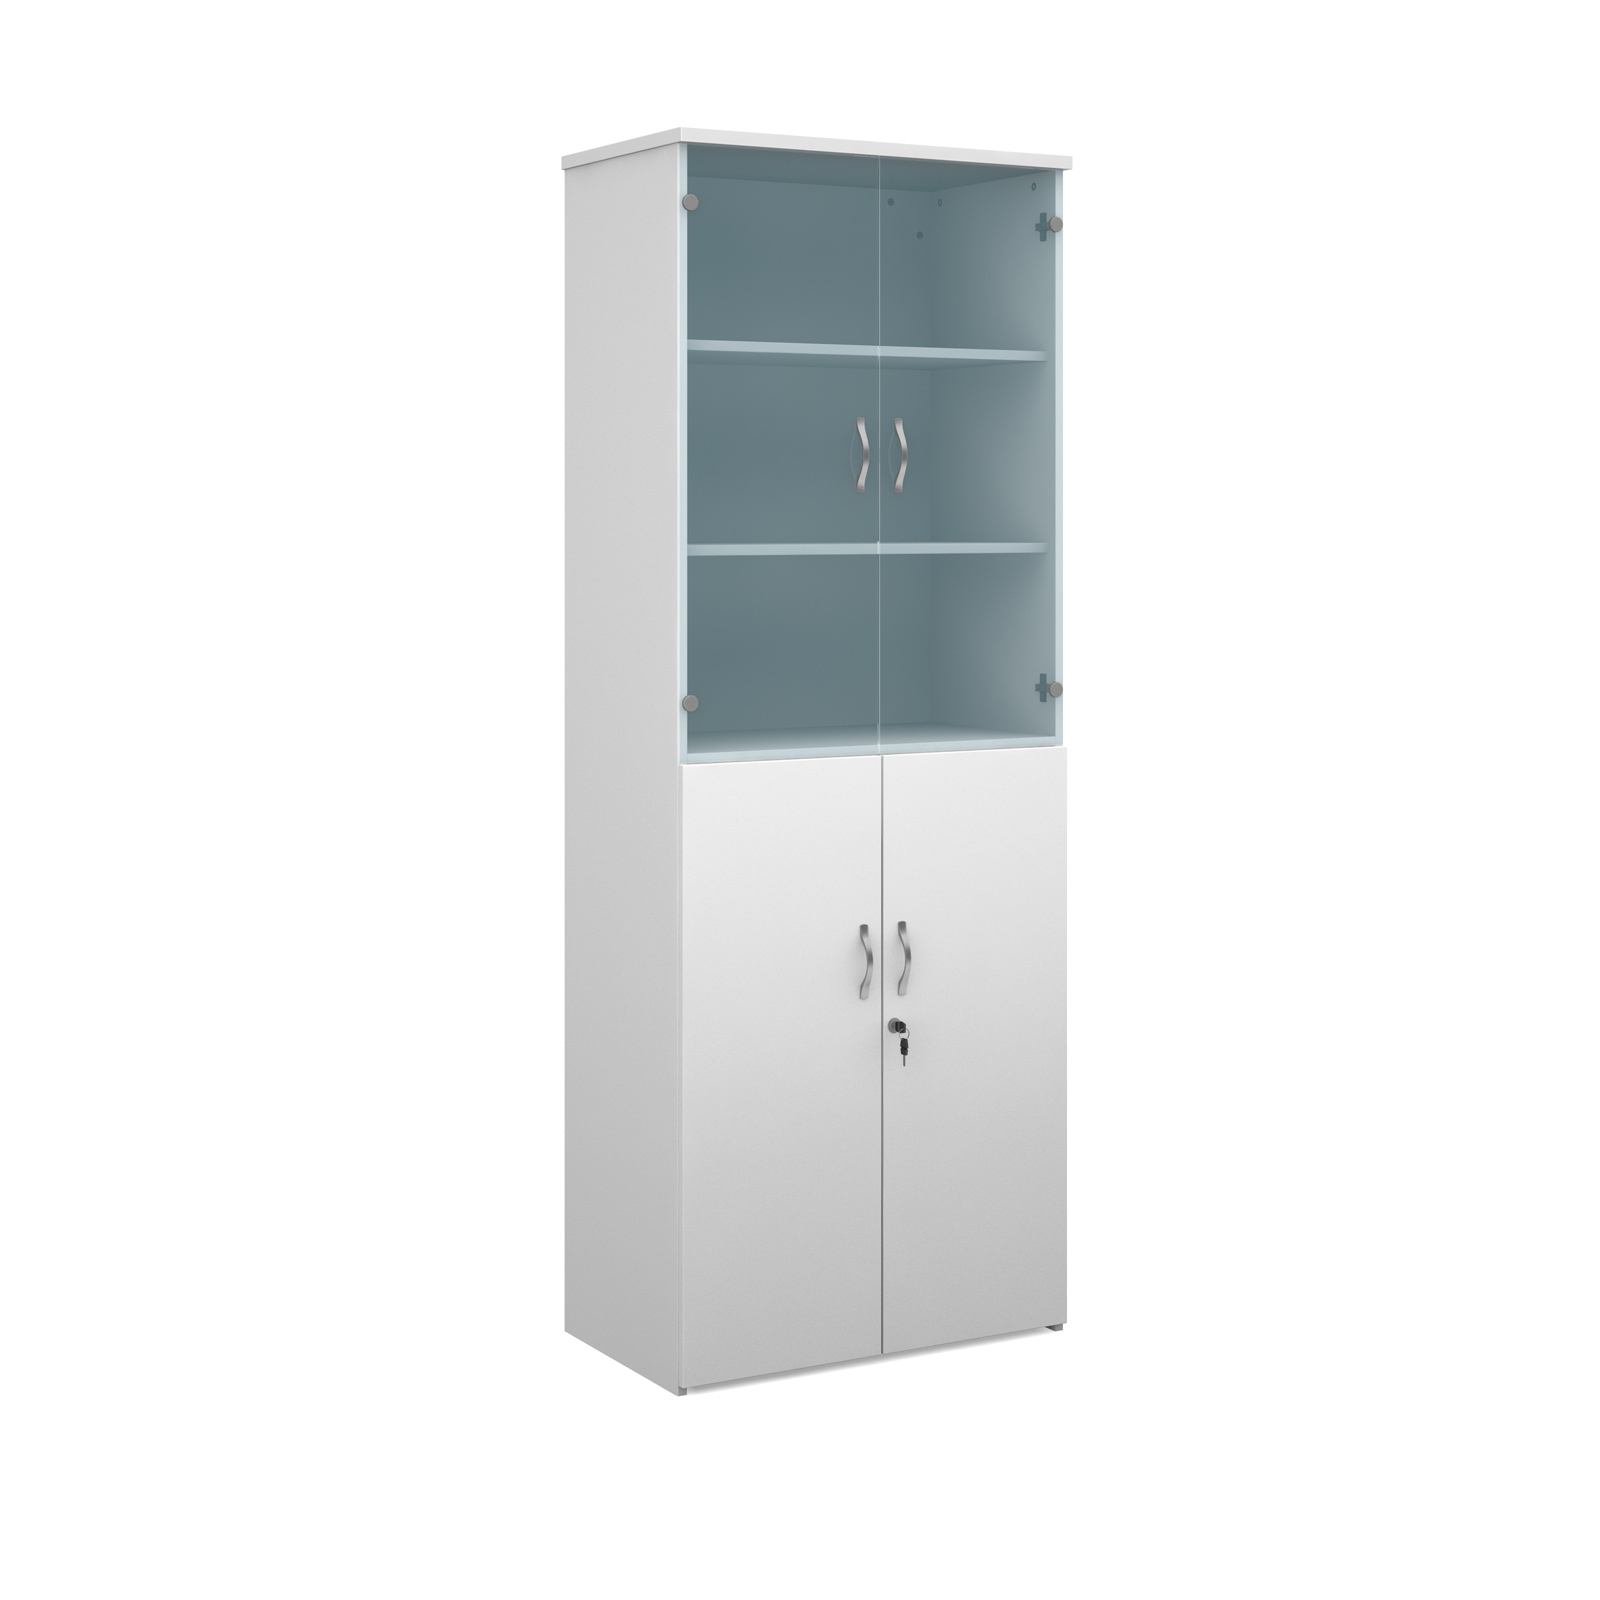 2140mm high combination unit with glass and wood doors in white